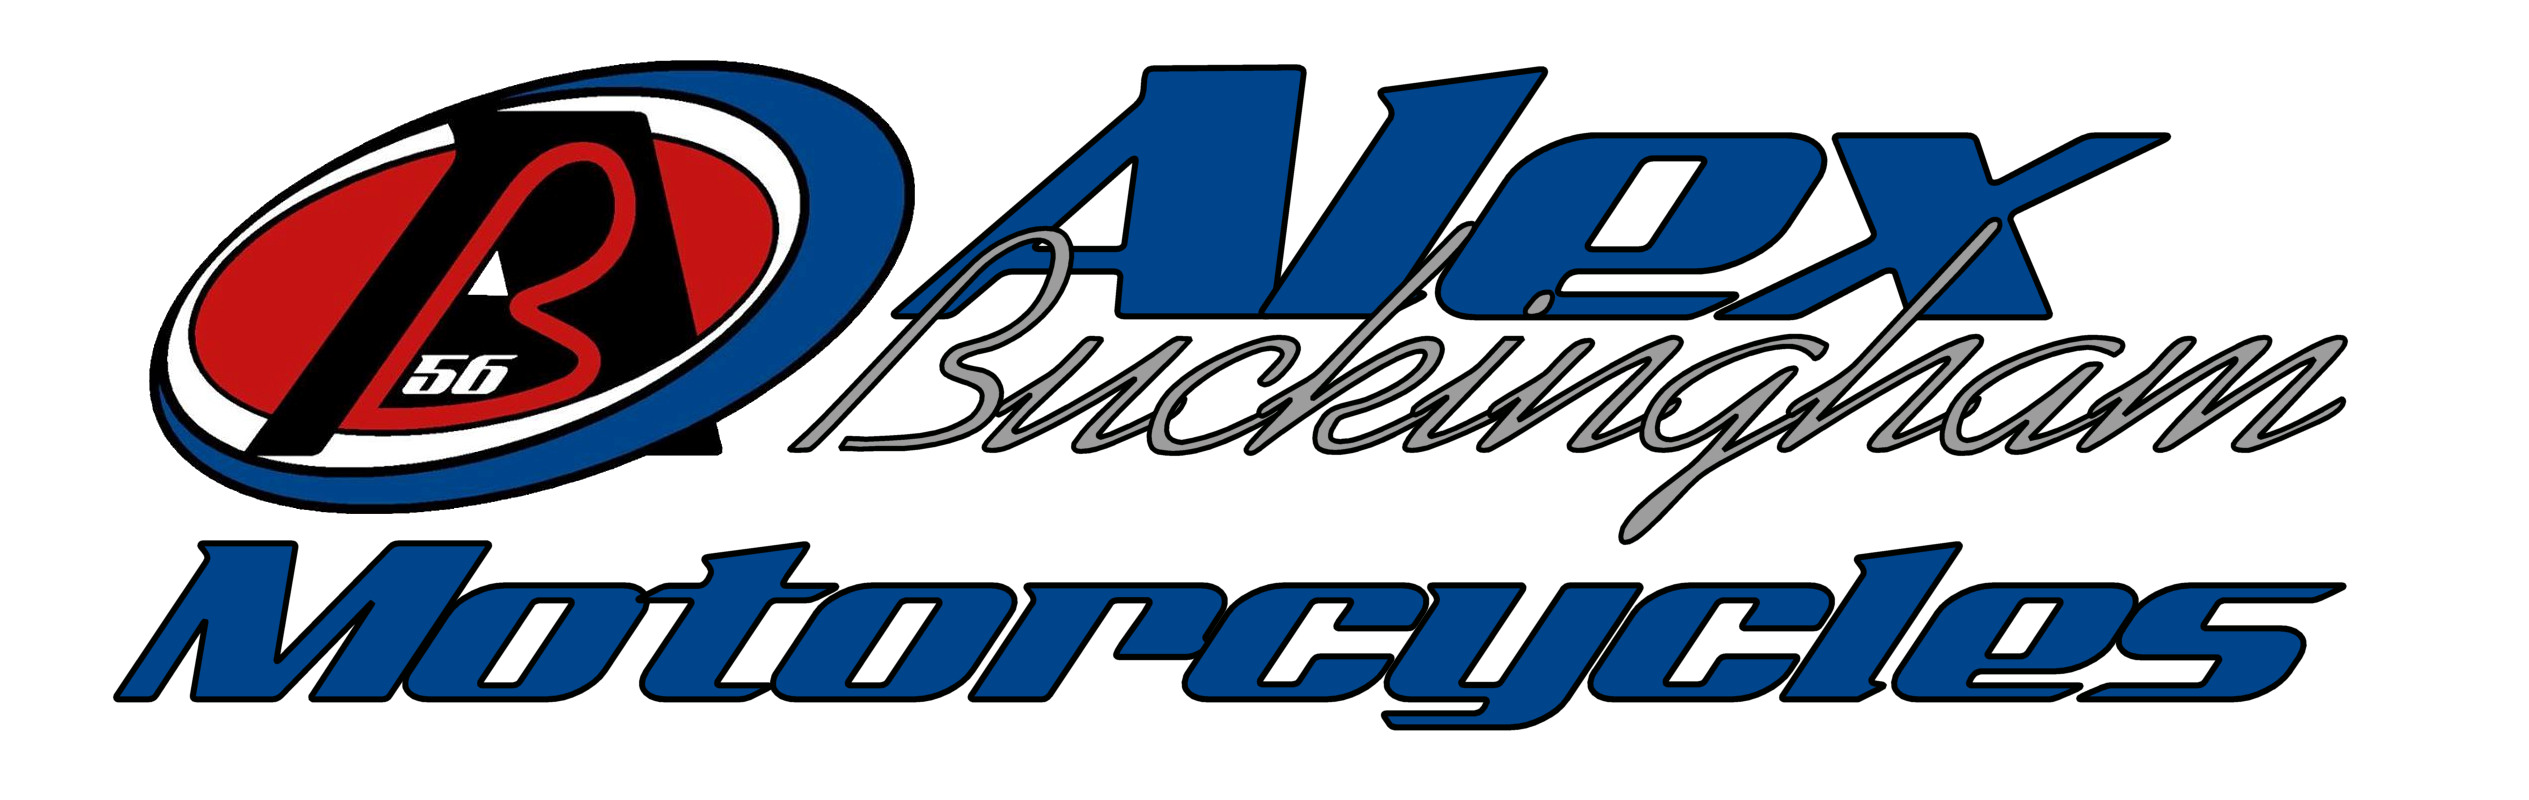 Alex Buckingham Motorcycles Sales Barnstaple North Devon